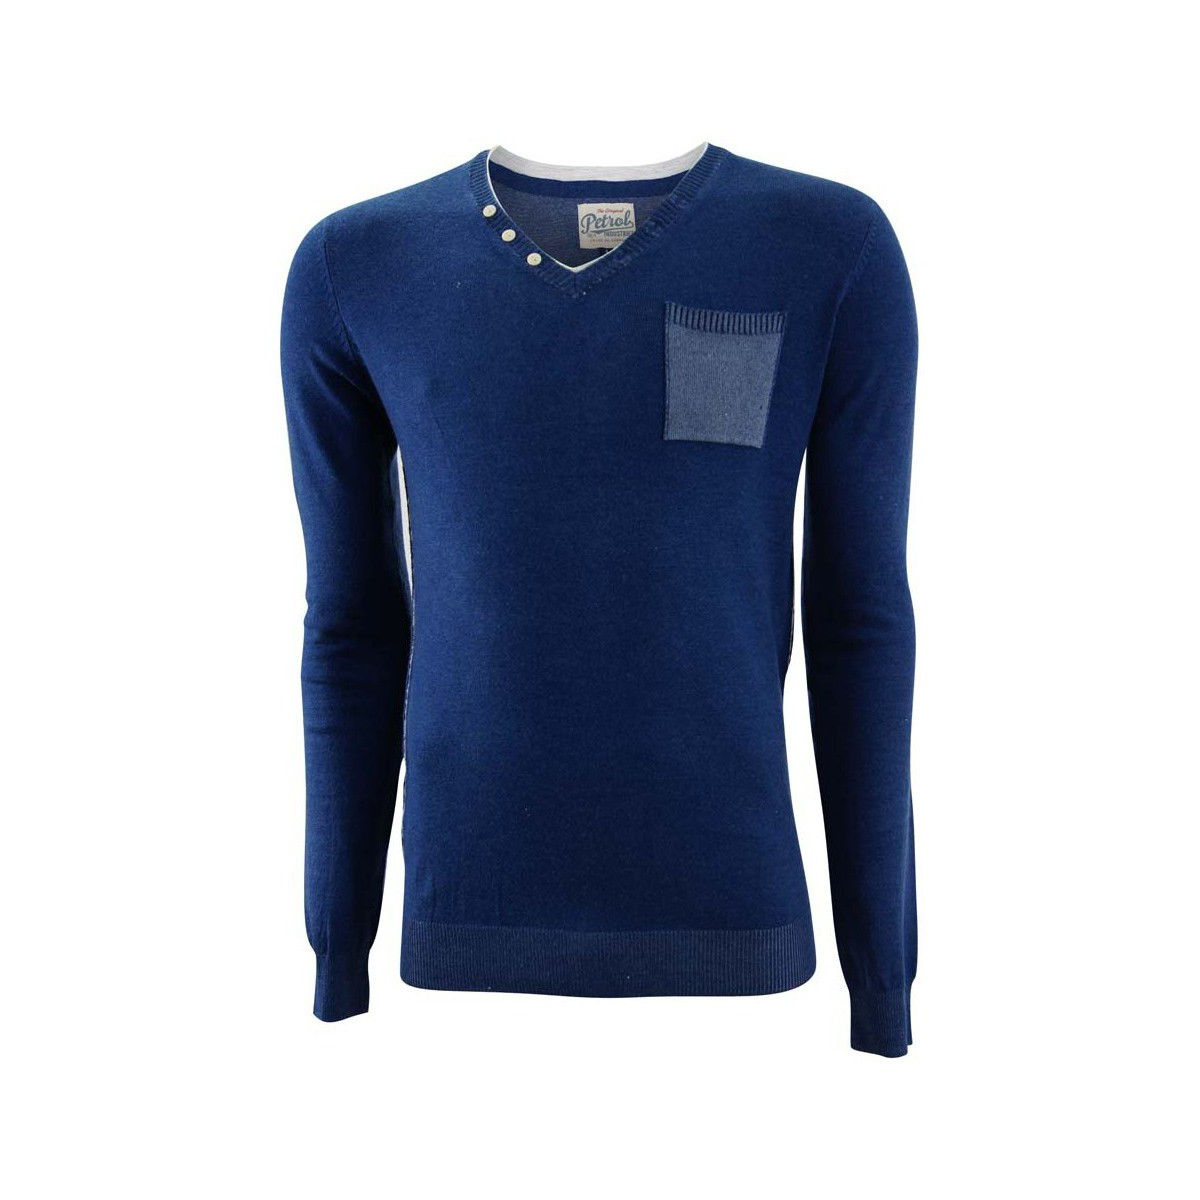 Petrol Industries Round neck double collar knit blau